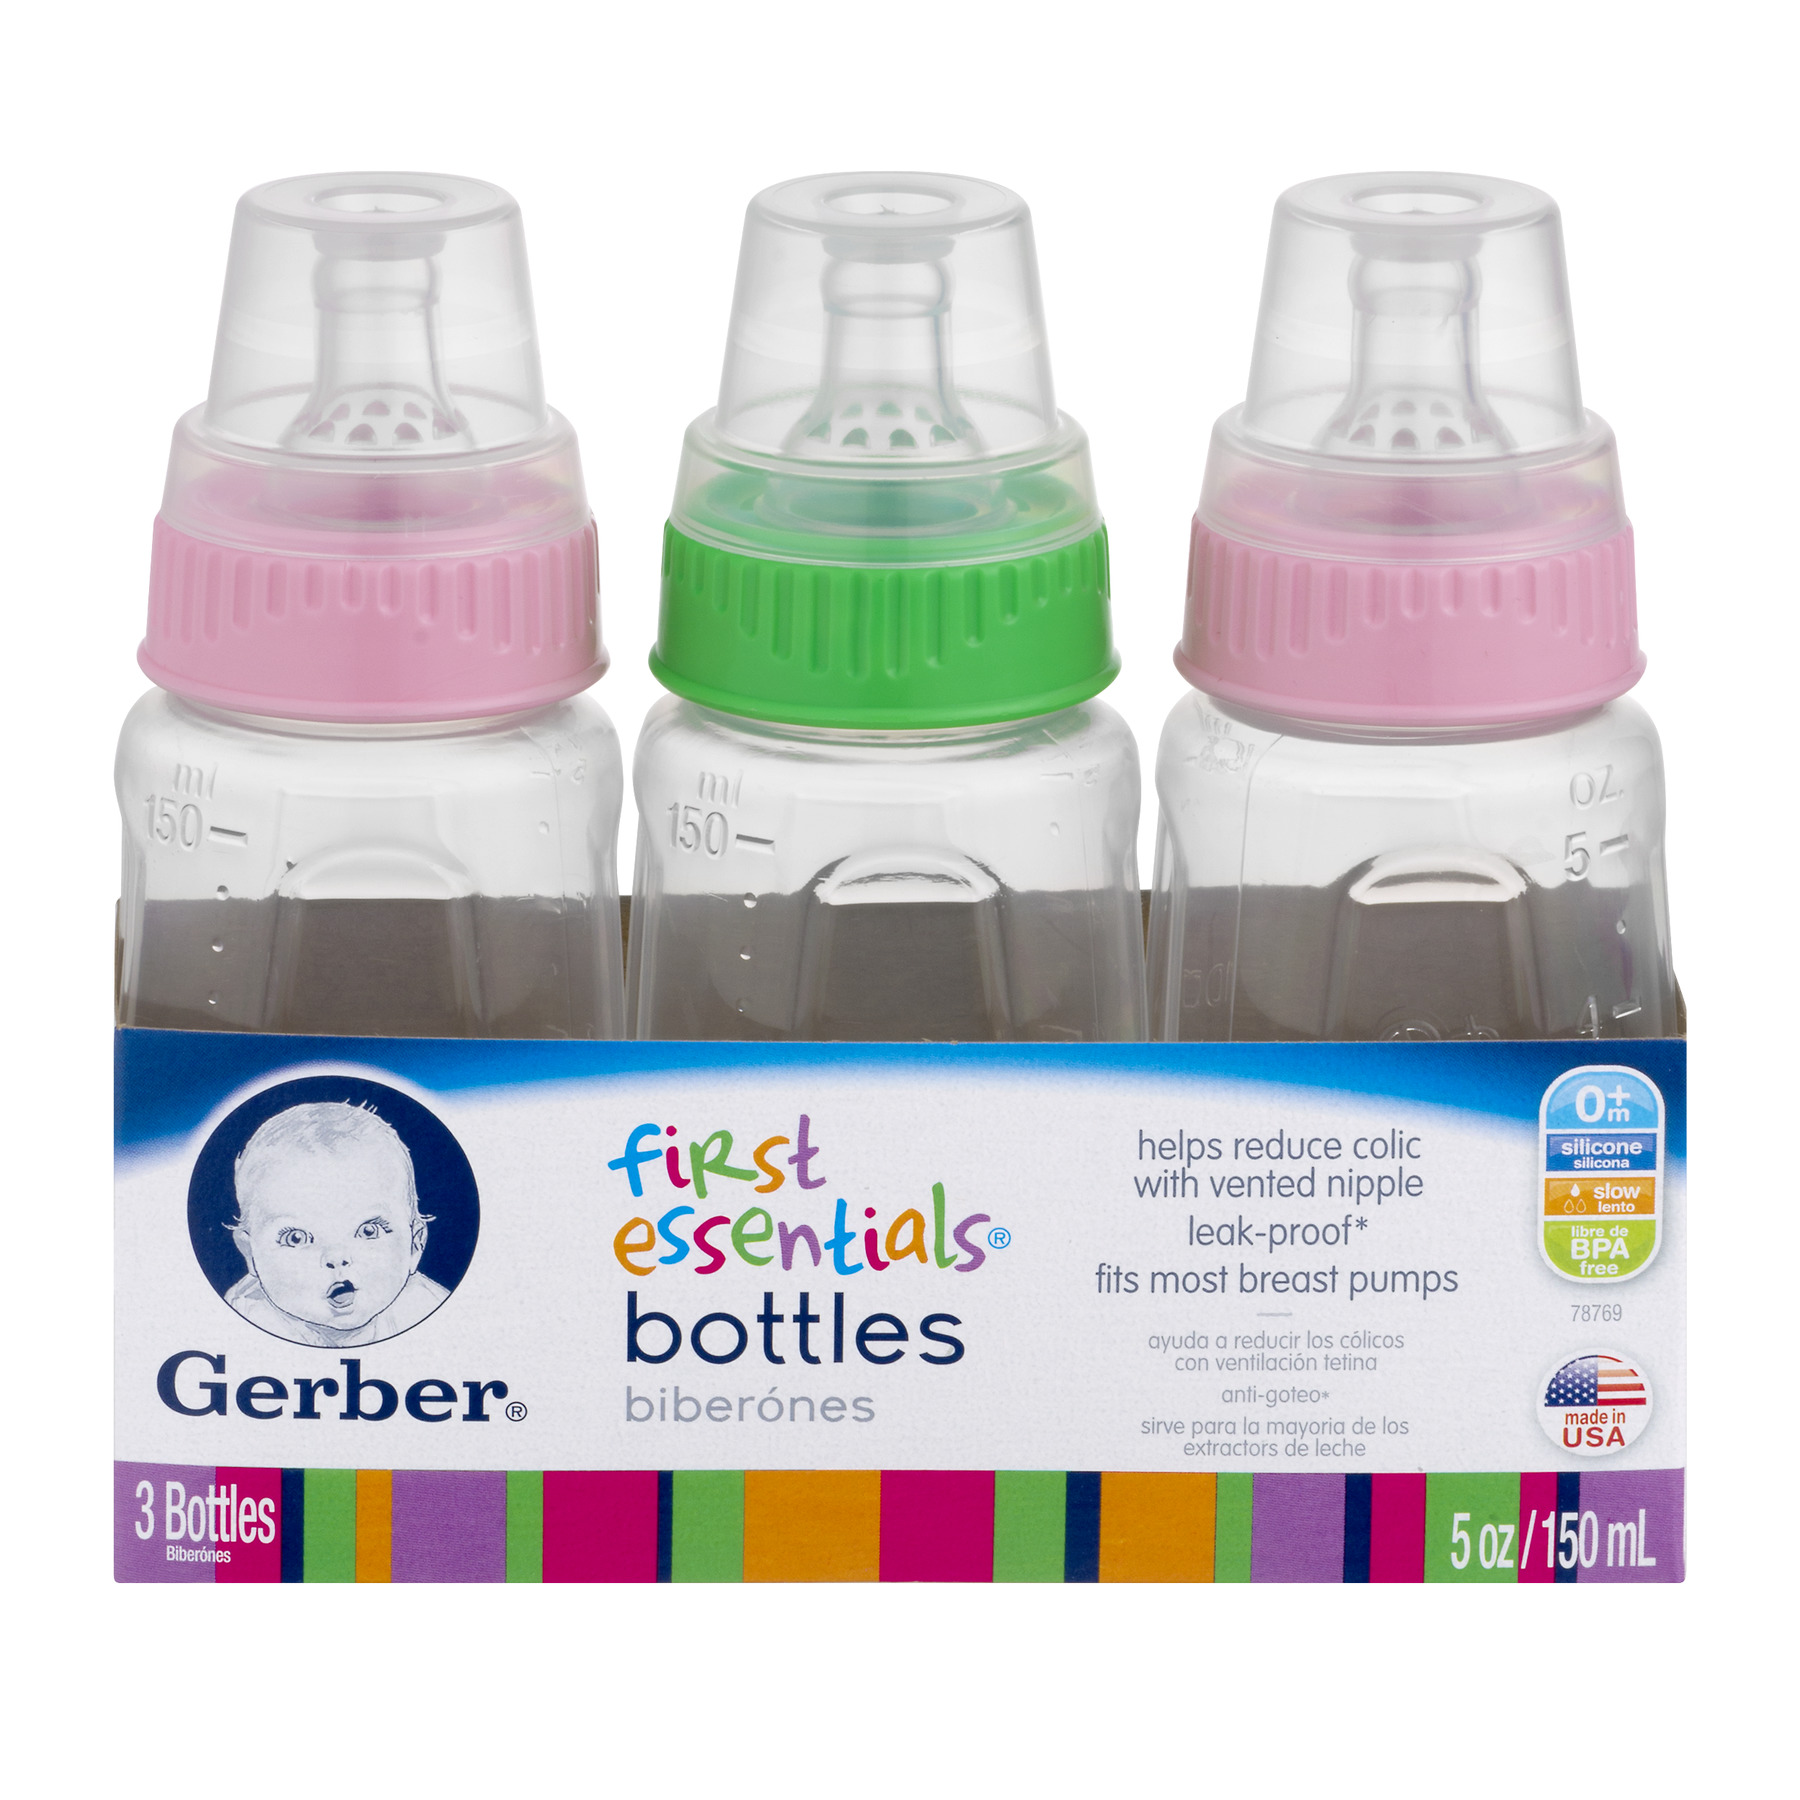 Gerber First Essentials Bottles 5 OZ, 0m+, 9 CT